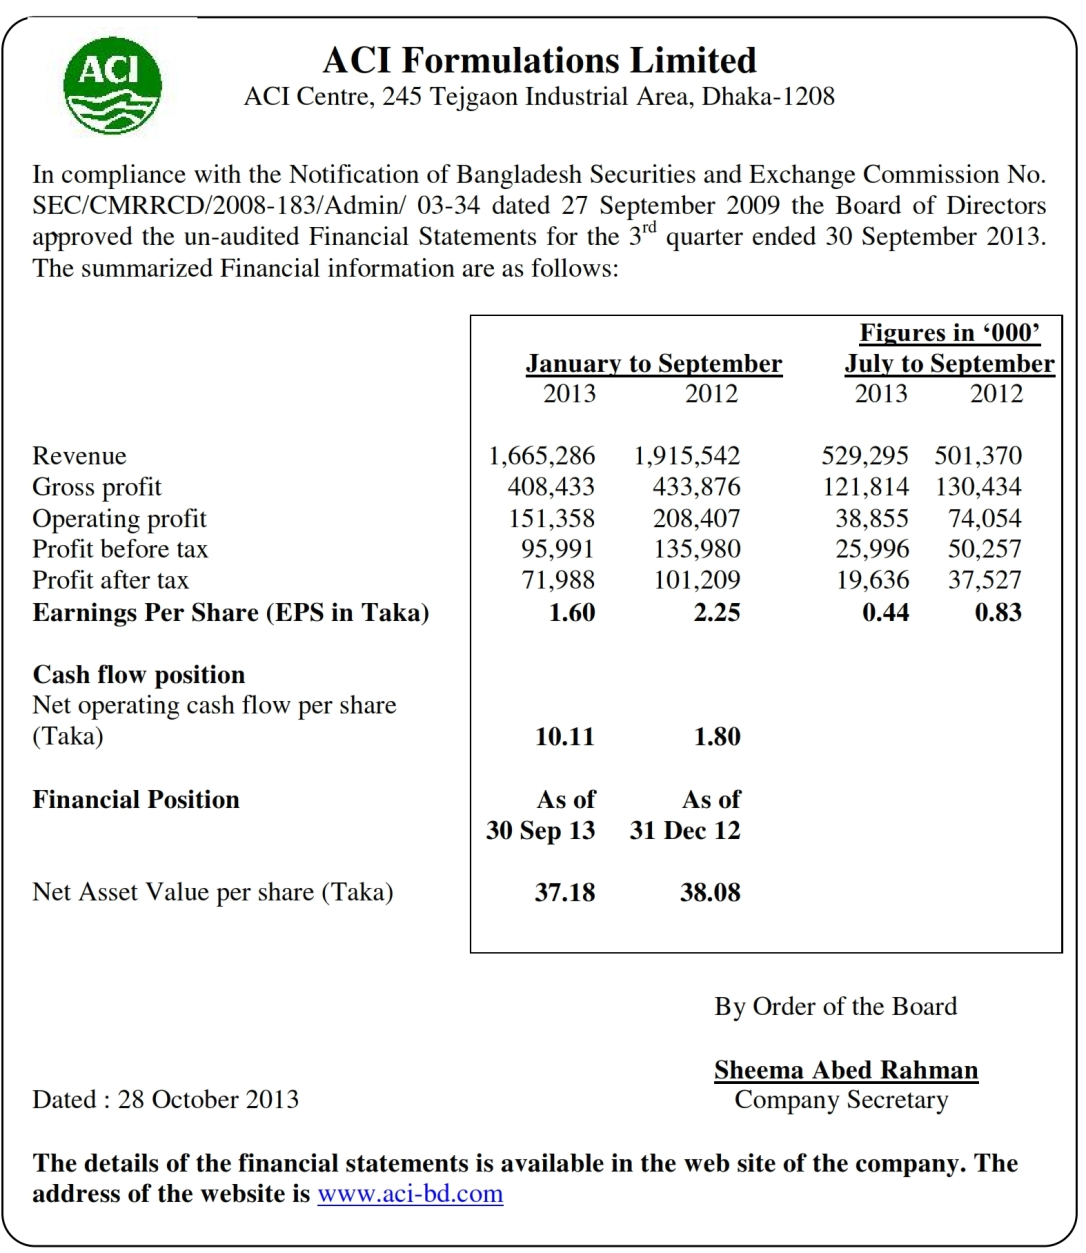 financial statement analysis marico bangladesh limited and aci formulation limited Company history - marico ltd 1988 - the company was incorporated on 13th october, under the name of marico foods ltd it obtained the certificate of commencement of business on 22nd november - the company is engaged in the business of manufacture and marketing of branded personal care products, edible oils, fabric care products and processed foods.